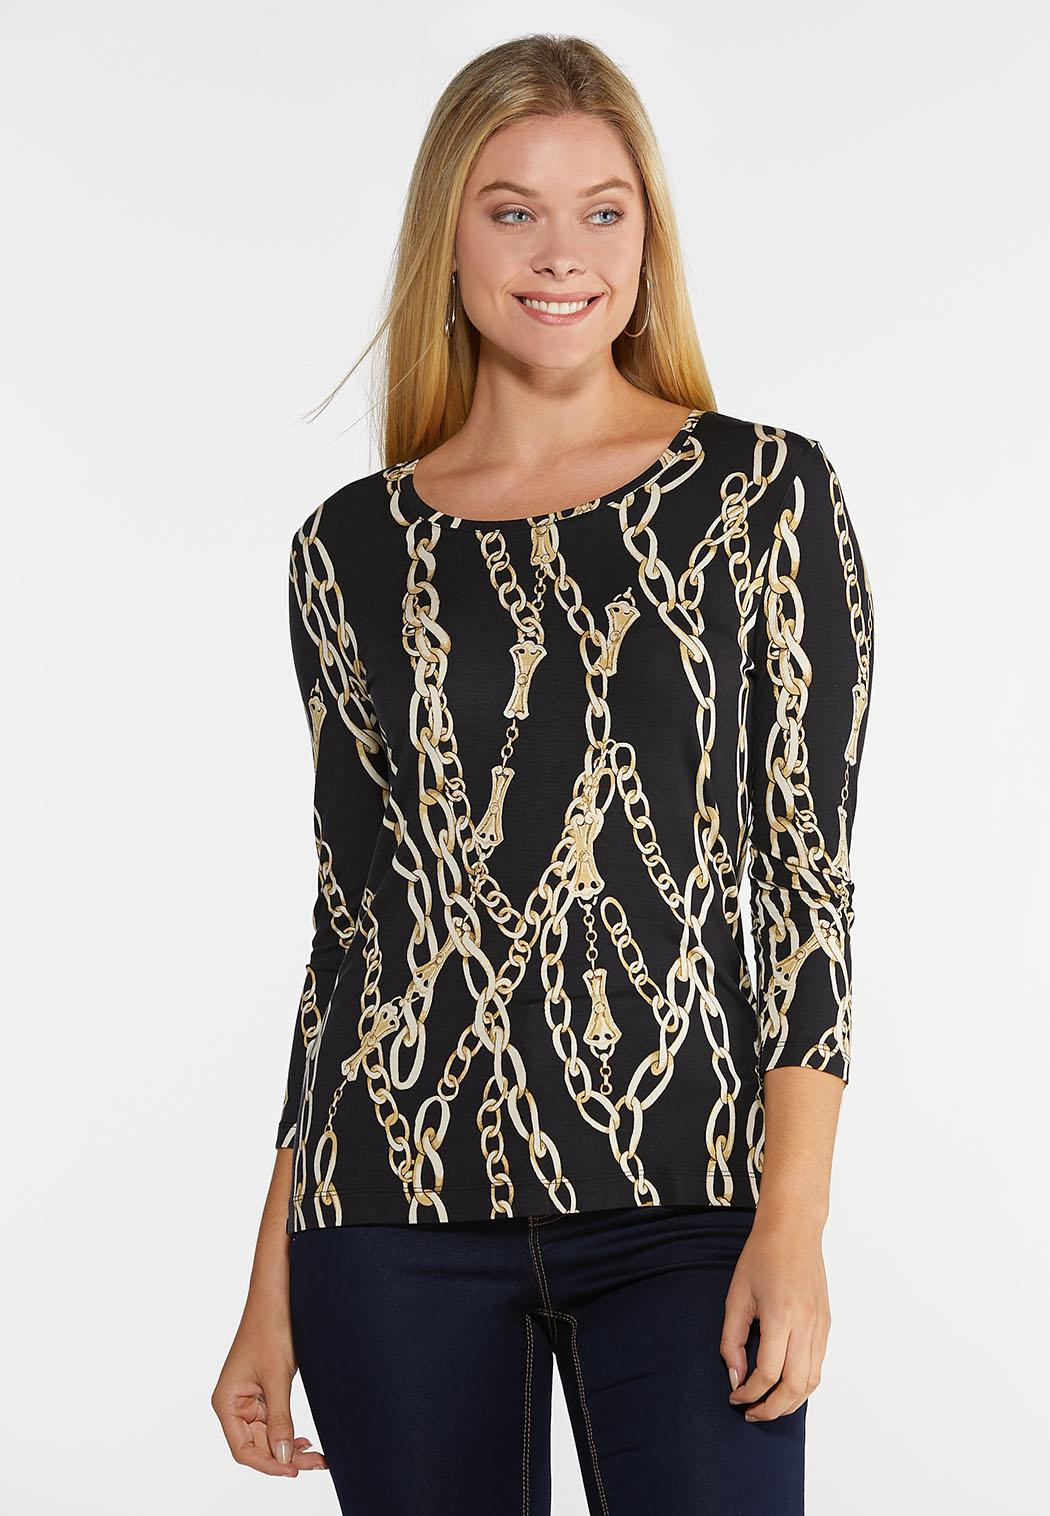 Plus Size Black and Gold Status Top